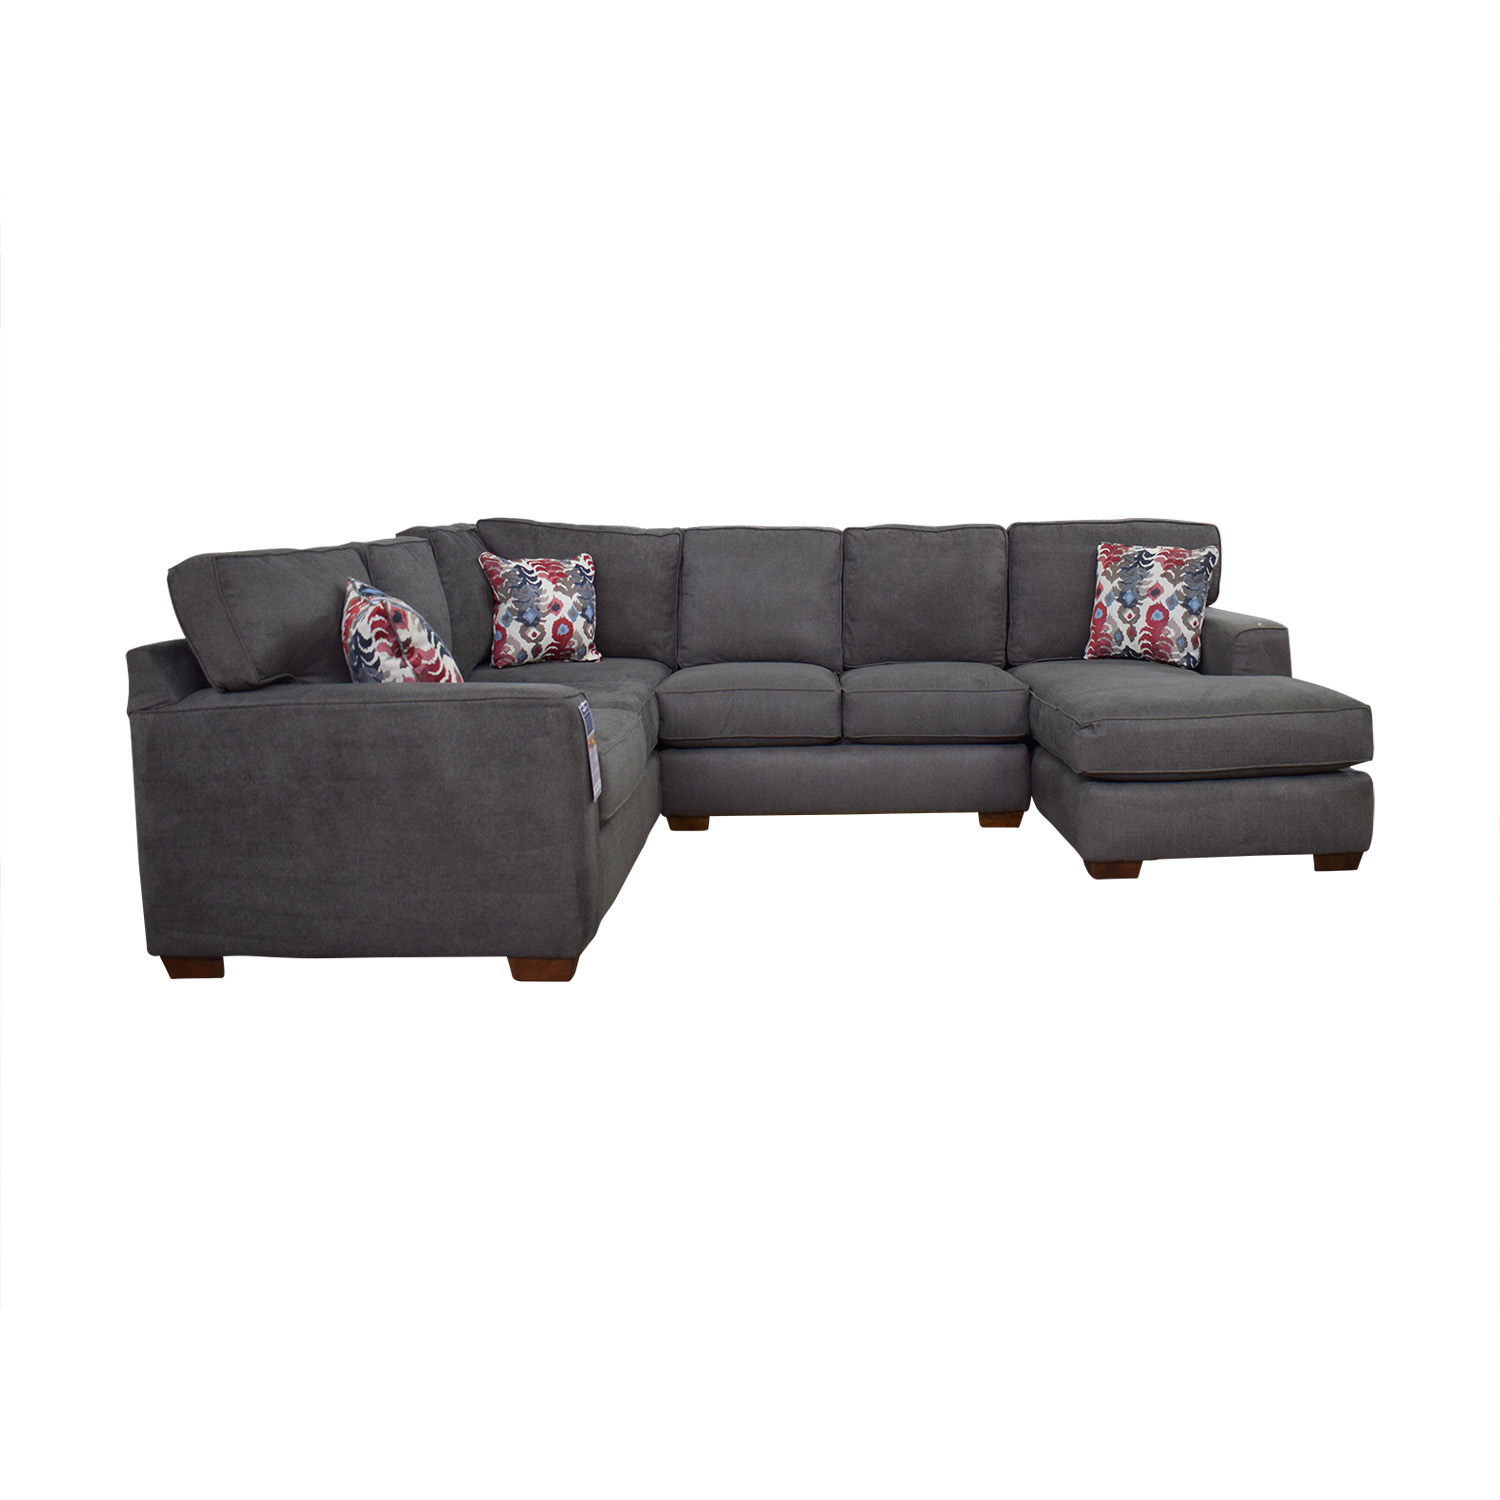 Klaussner Klaussner Abbott Three-Piece Chaise Sectional Sofa discount